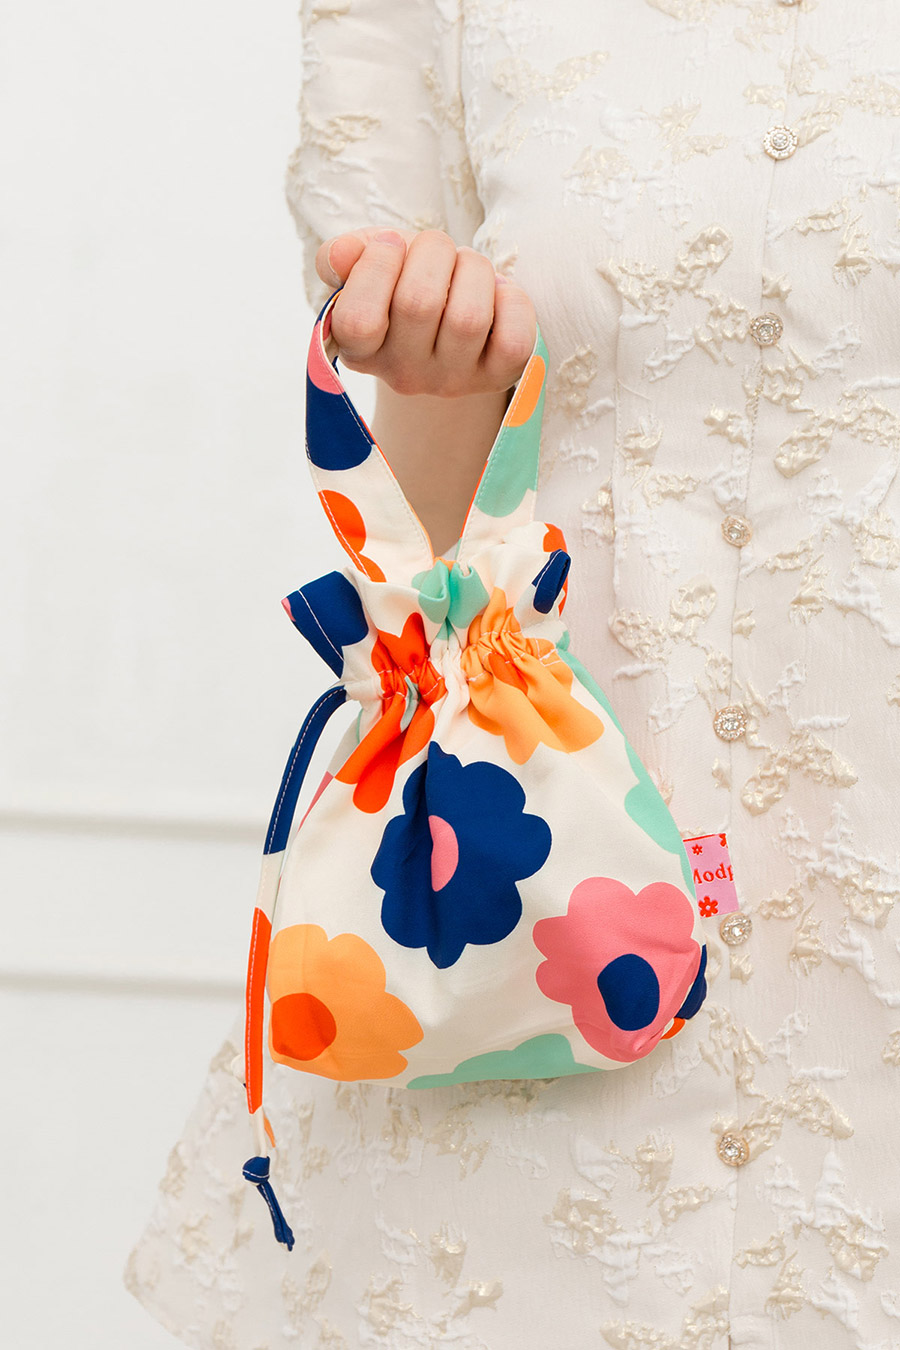 MANDARIN ORANGE BAG - HOLLY [BY MODPARADE]